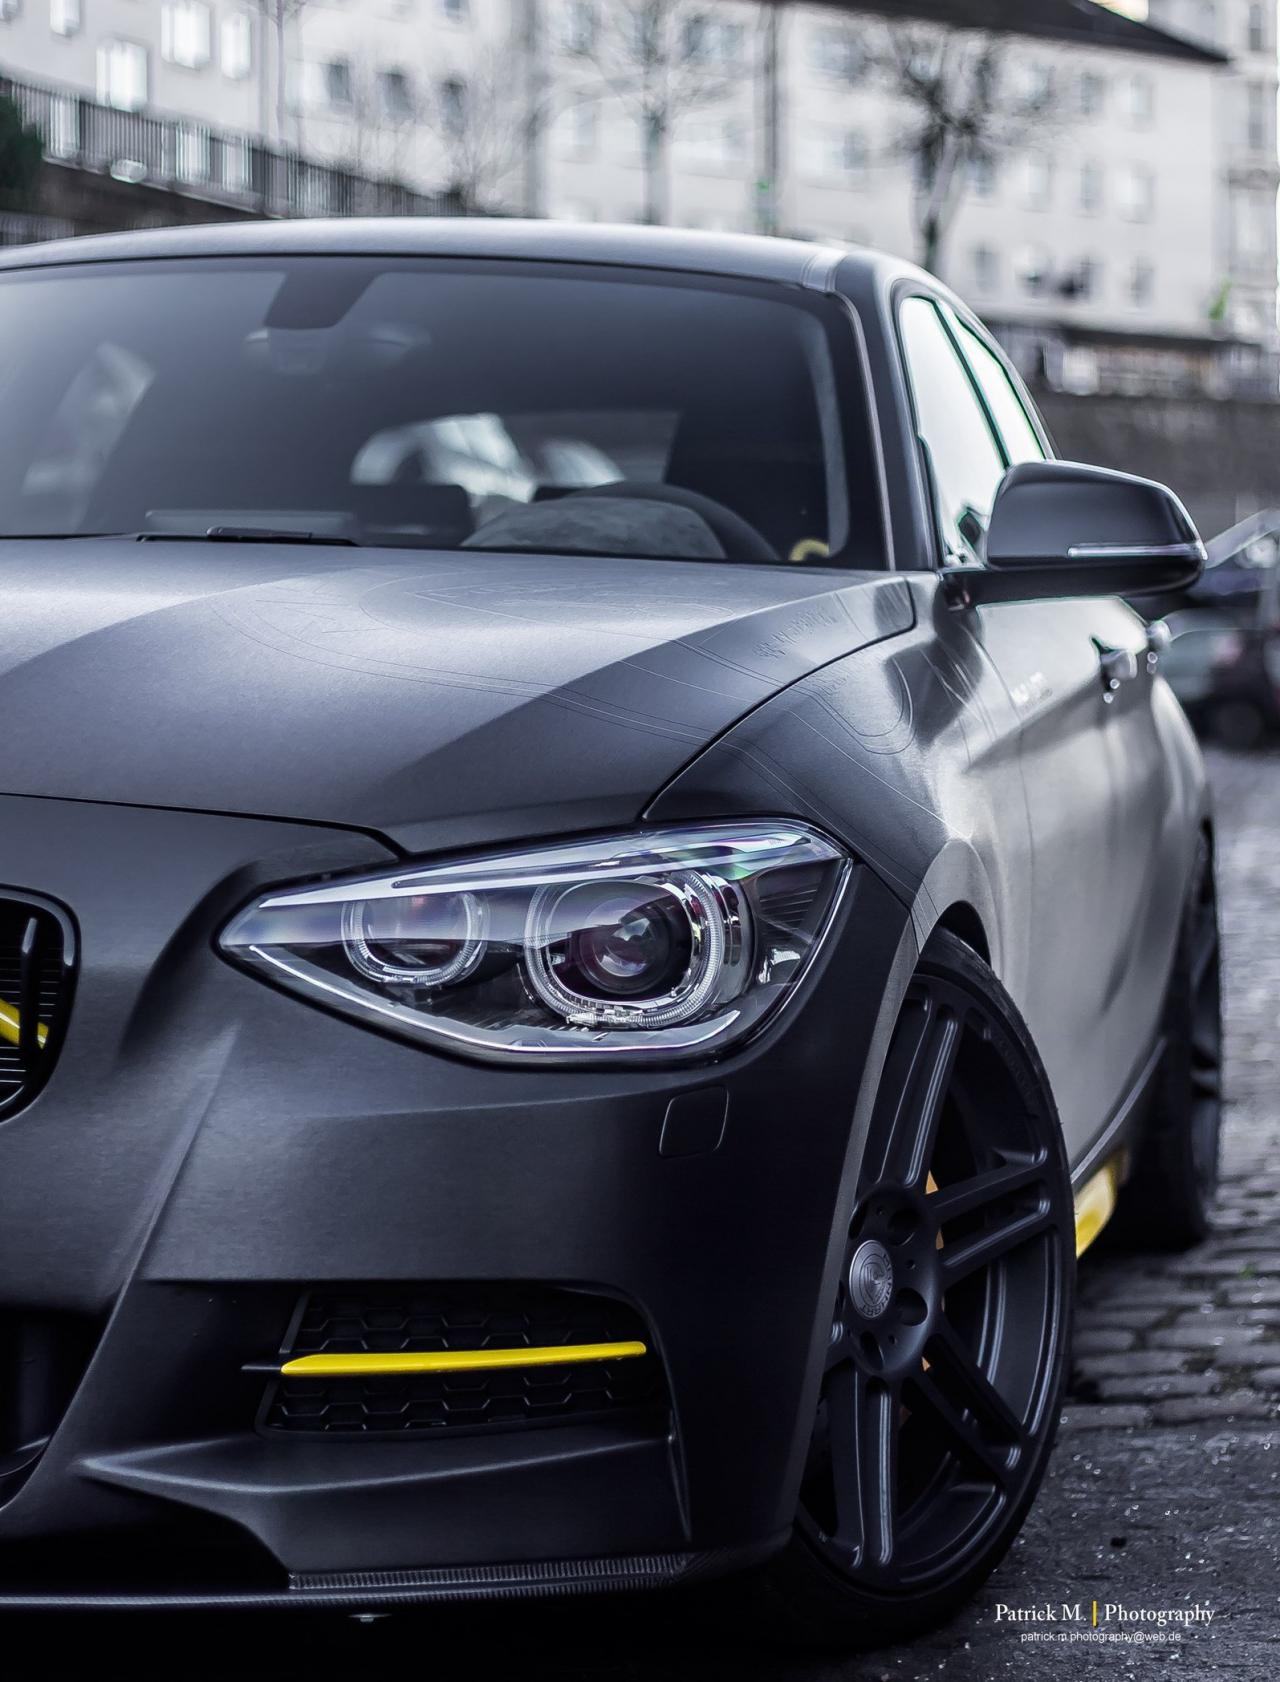 Bmw Tuning M135i Based Manhart Mh1 400 With 294kw